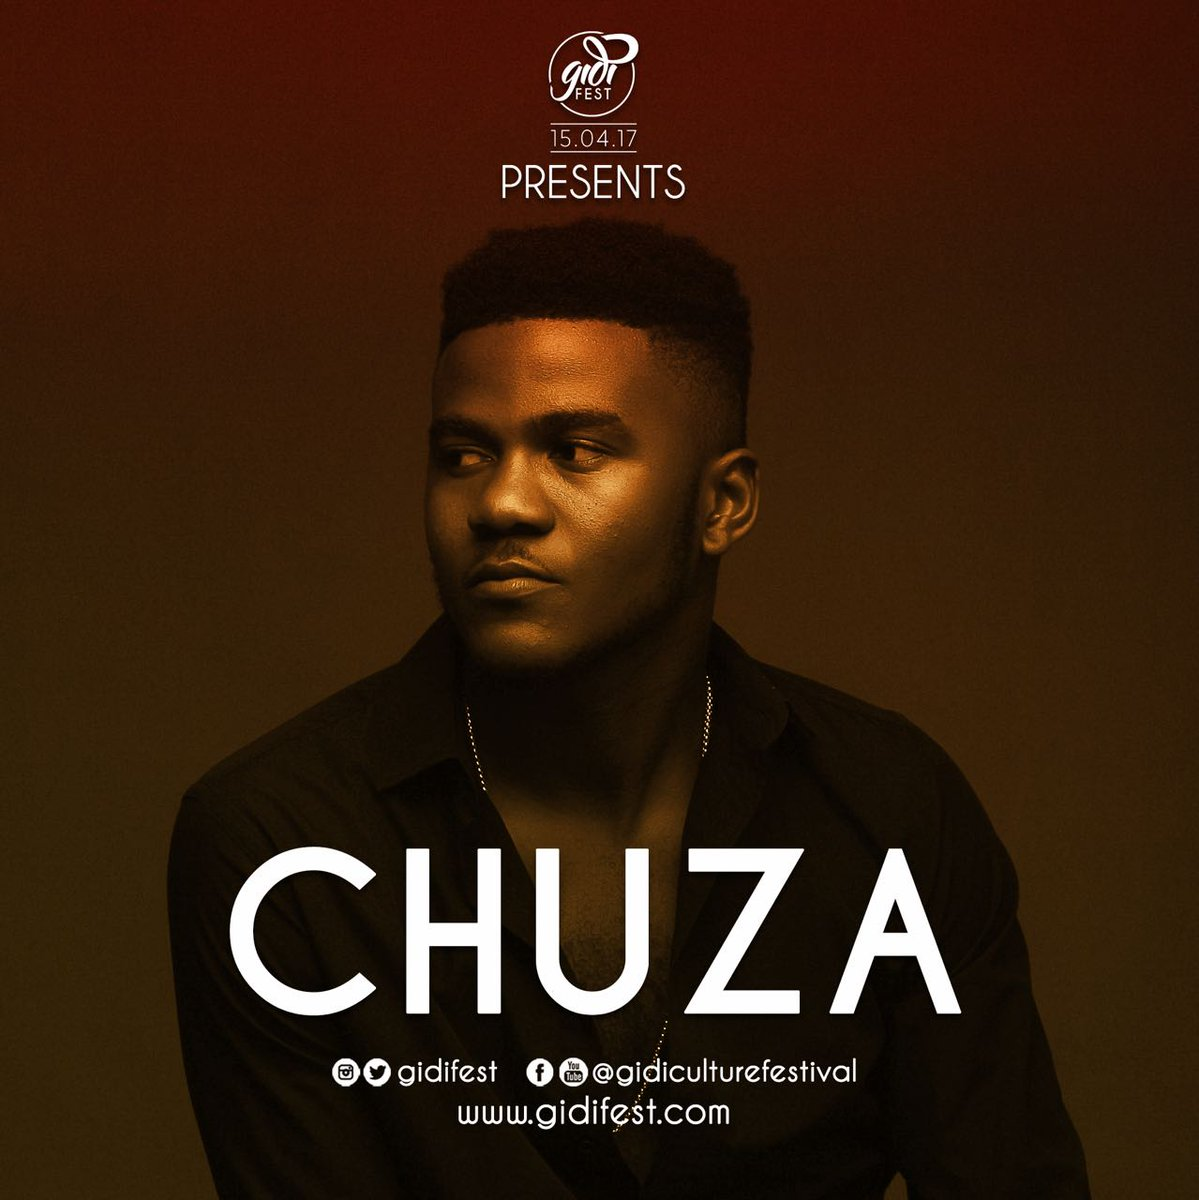 Come support @ChuzaDeclan He will be performing at @GidiFest 2017, #Ekoatlantic #Foryou #GidiFest2017  <br>http://pic.twitter.com/MIECNF0kwB